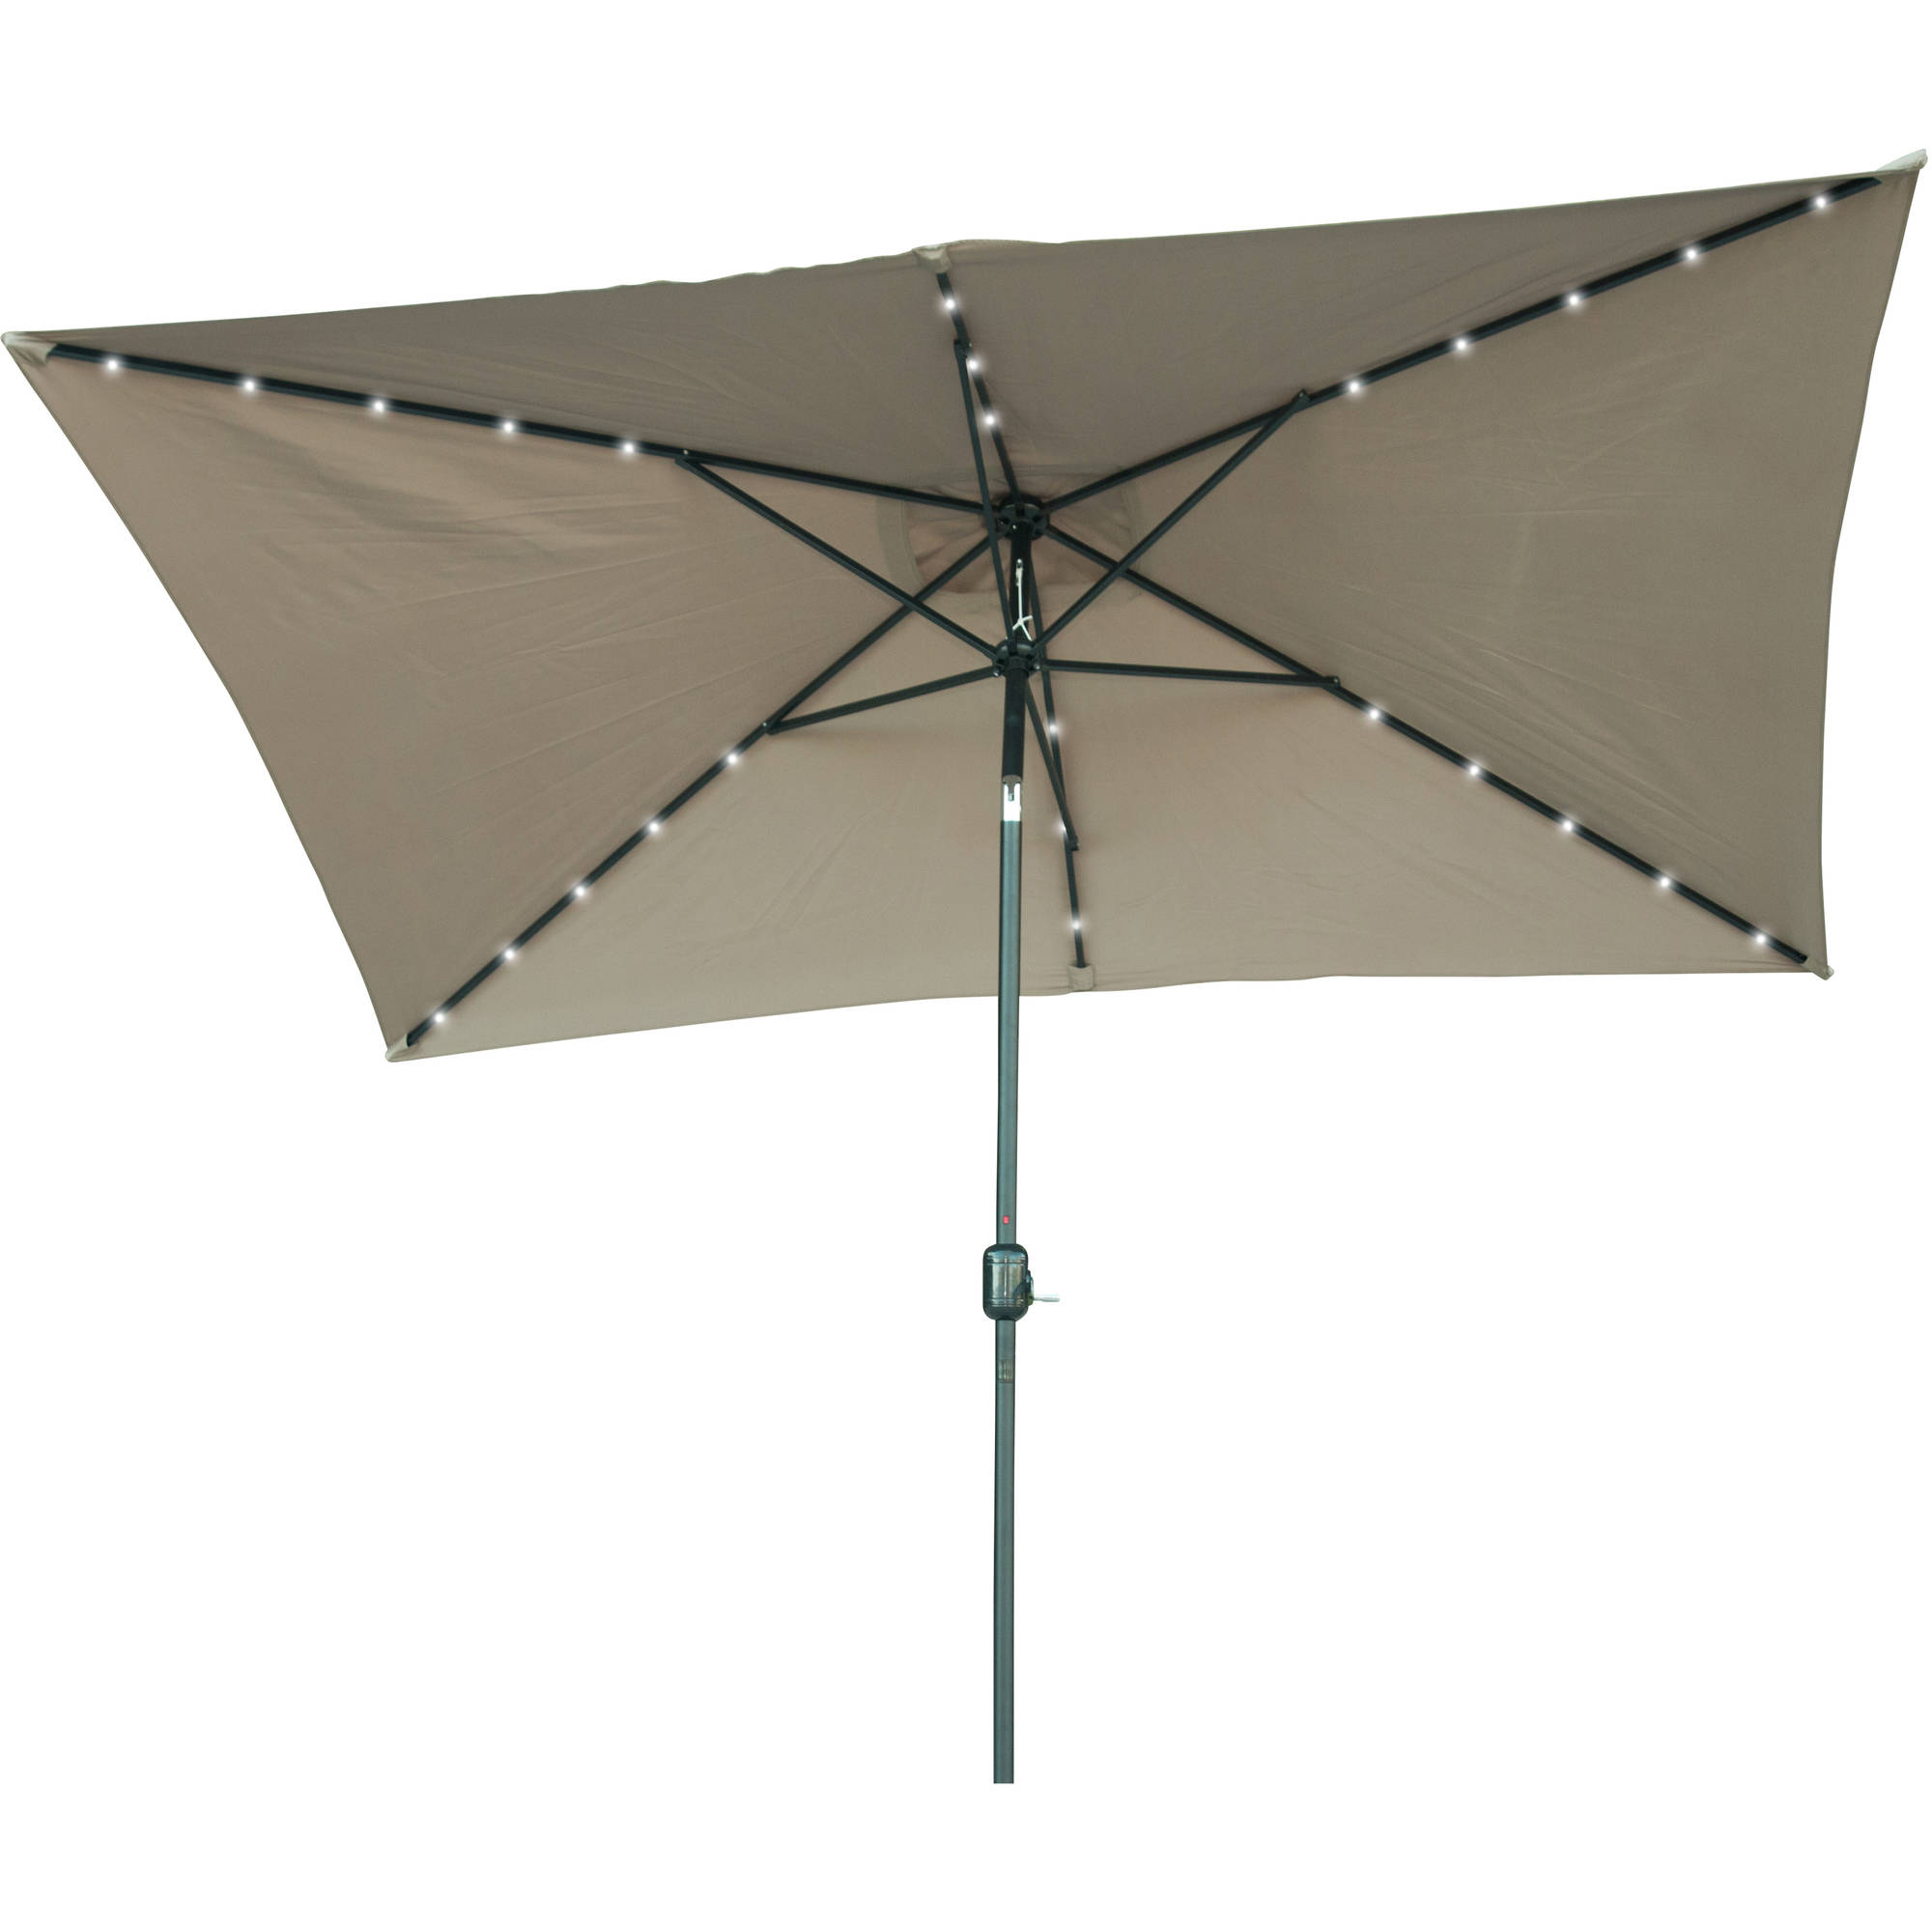 Rectangular Solar Powered LED Lighted Patio Umbrella 10' x 6.5' By Trademark Innovations... by Trademark Innovations